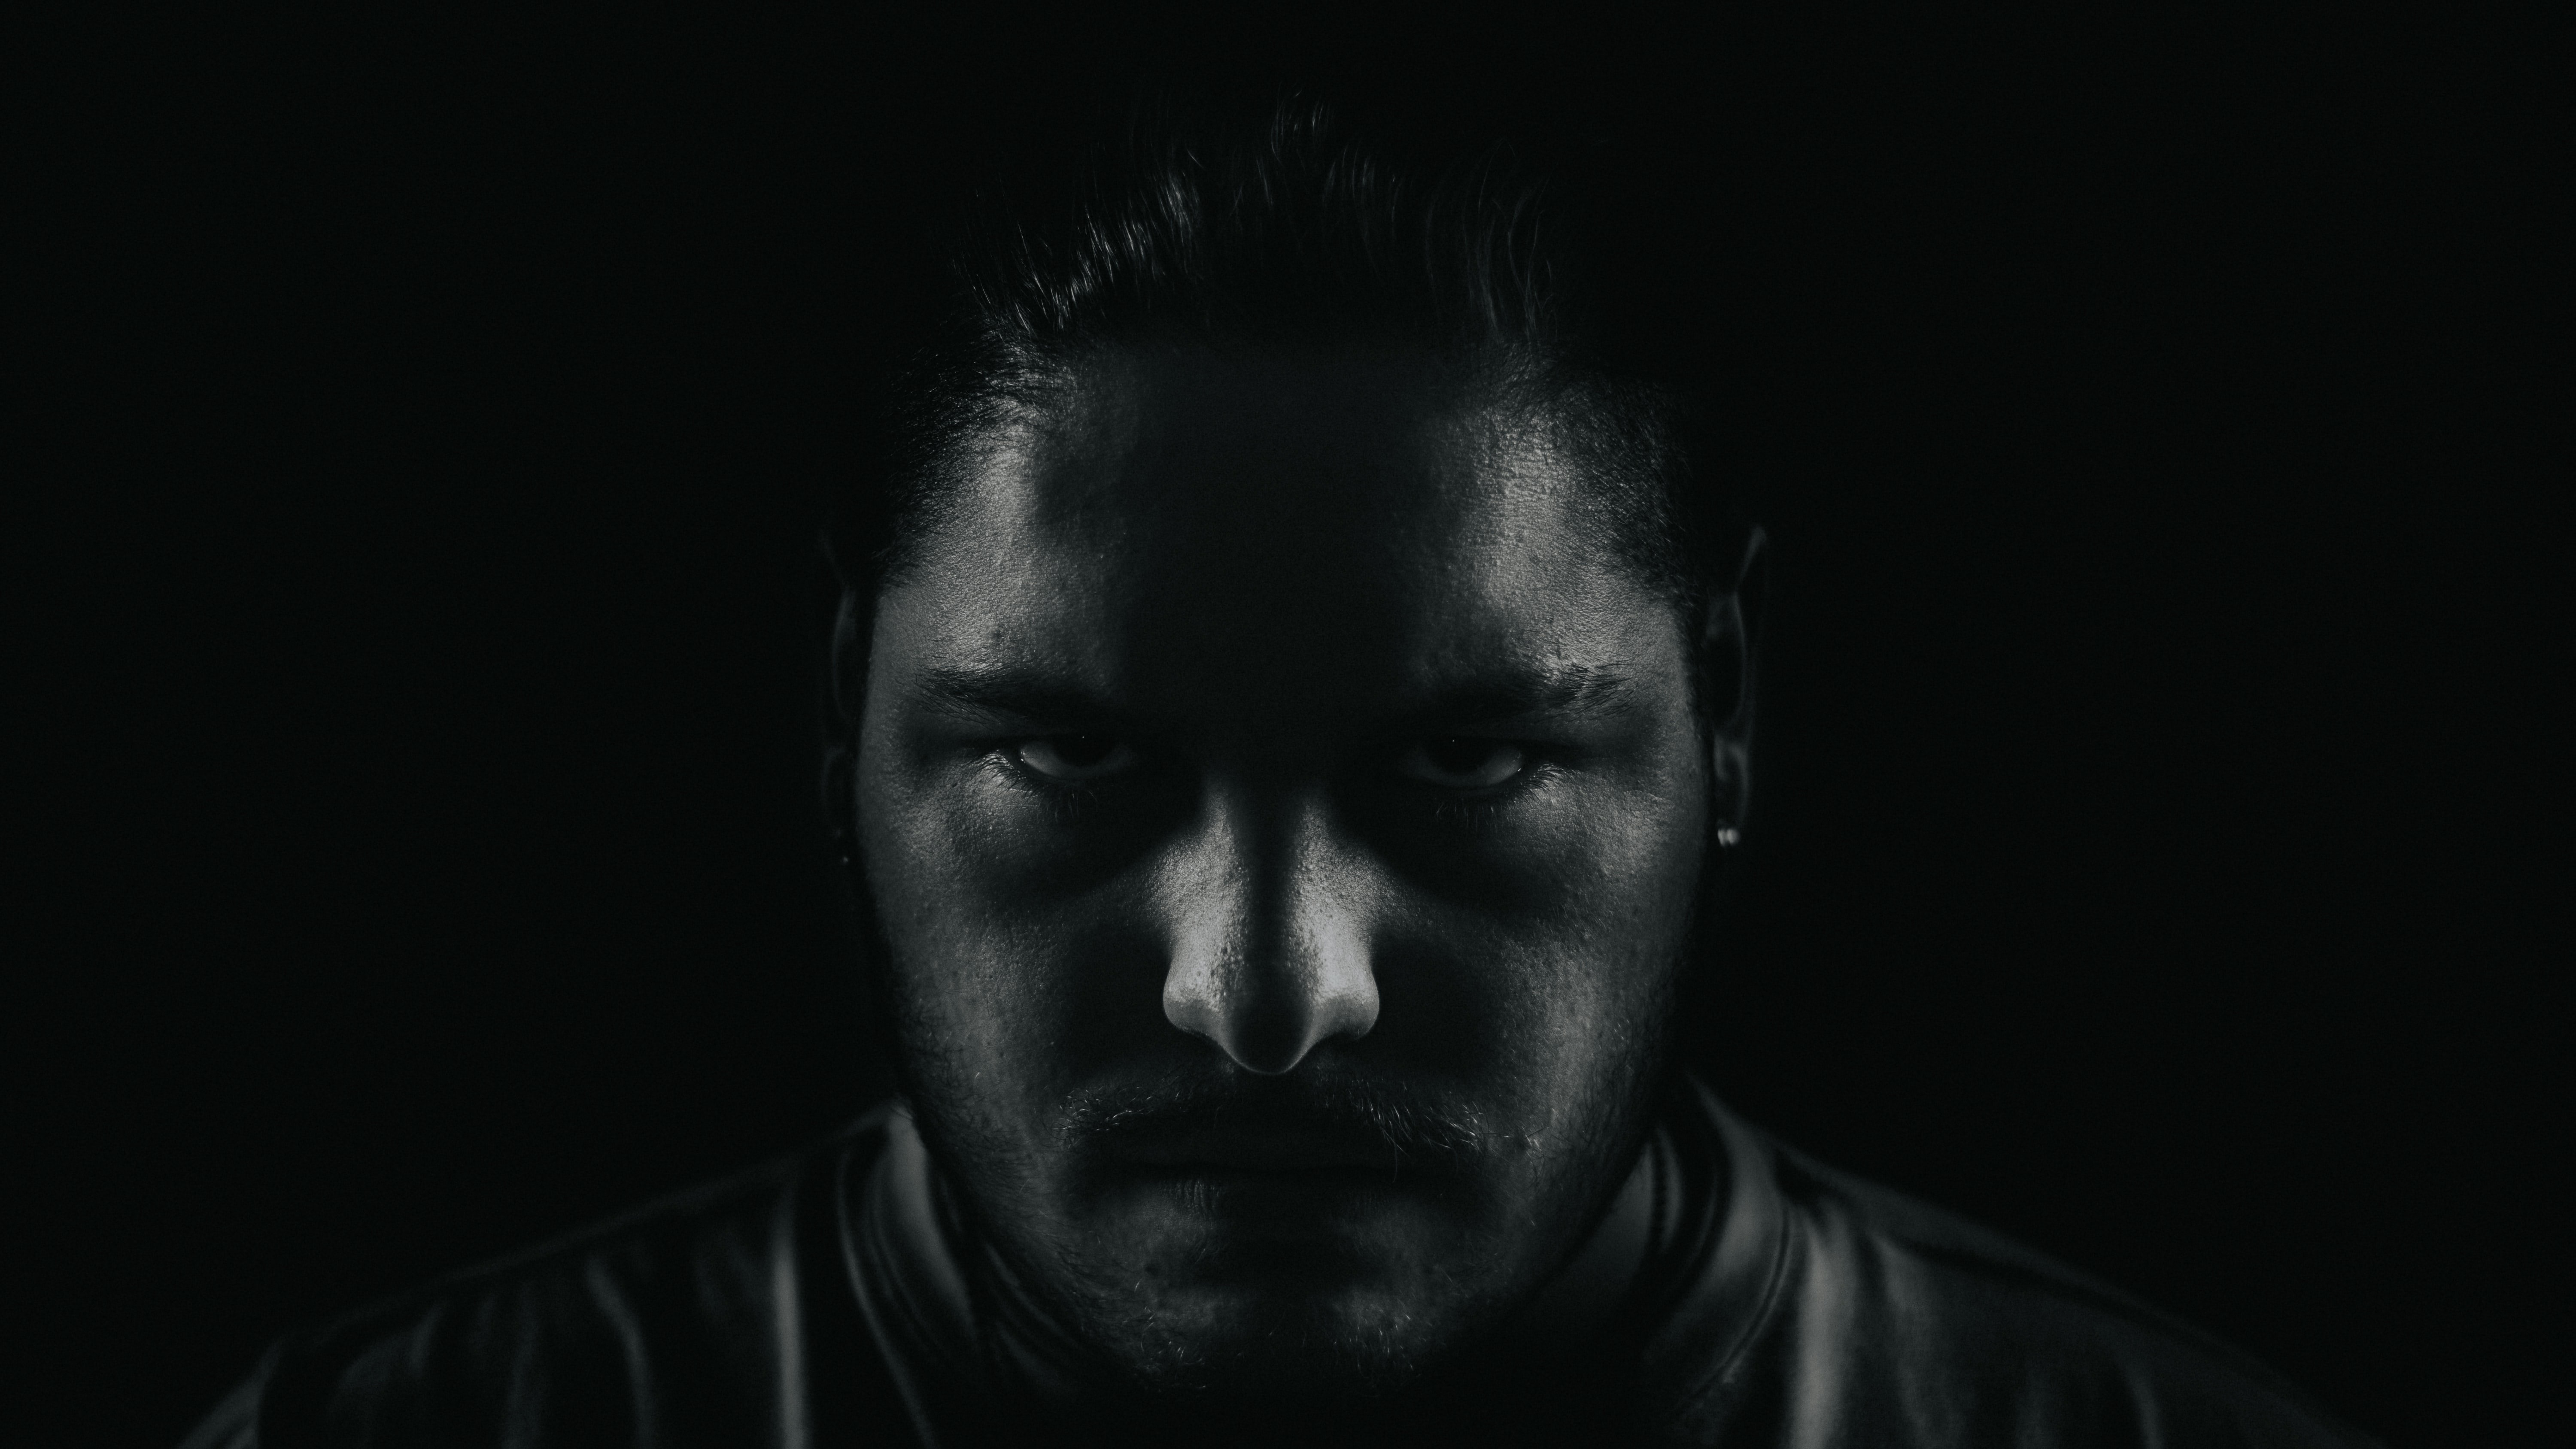 grayscale portrait photo of man